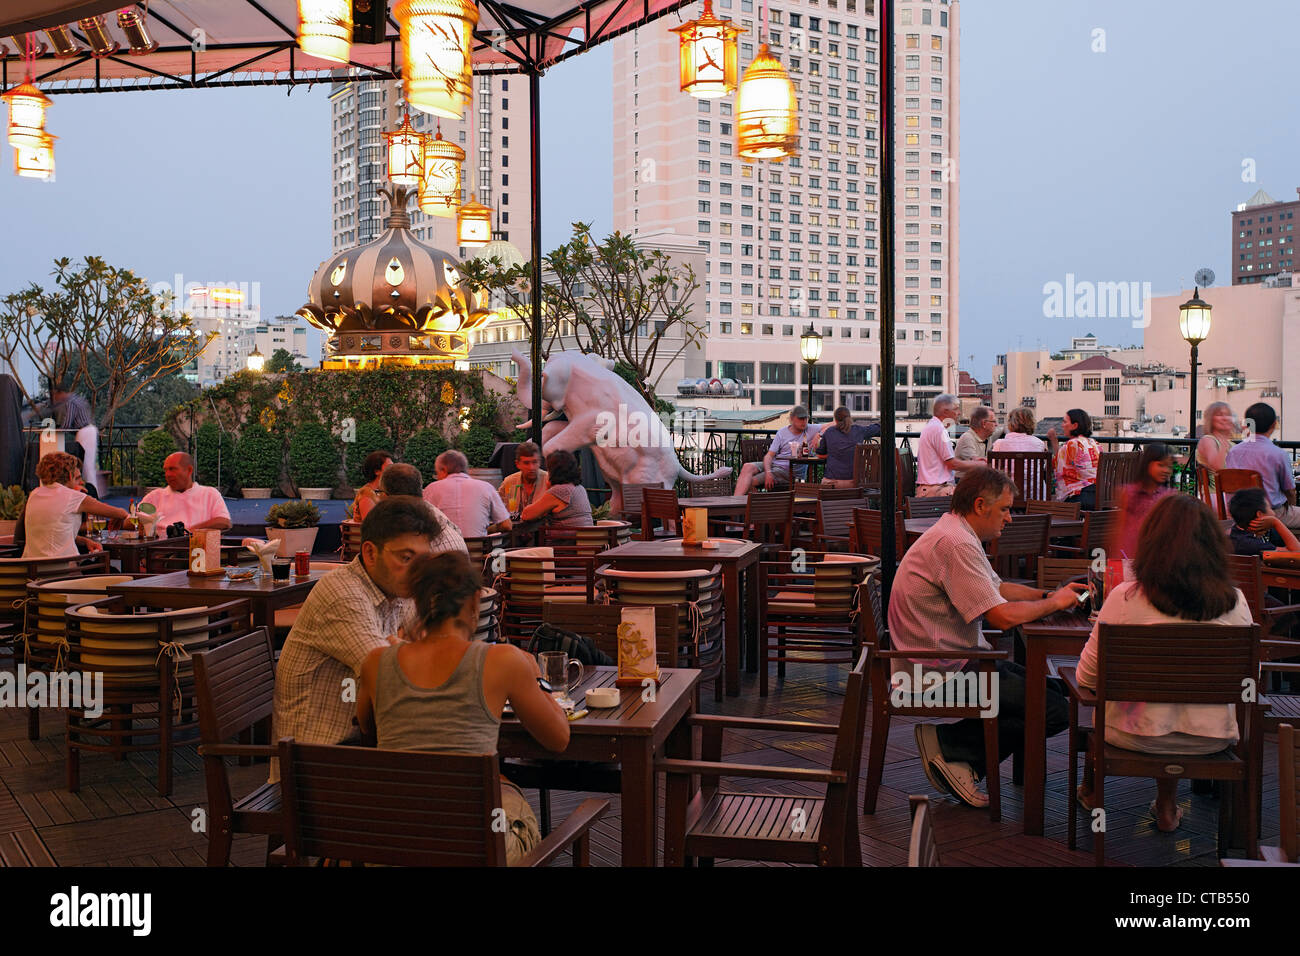 Stock Photo - Restaurant, roof garden, Rex Hotel, Ho chi minh City, Vietnam